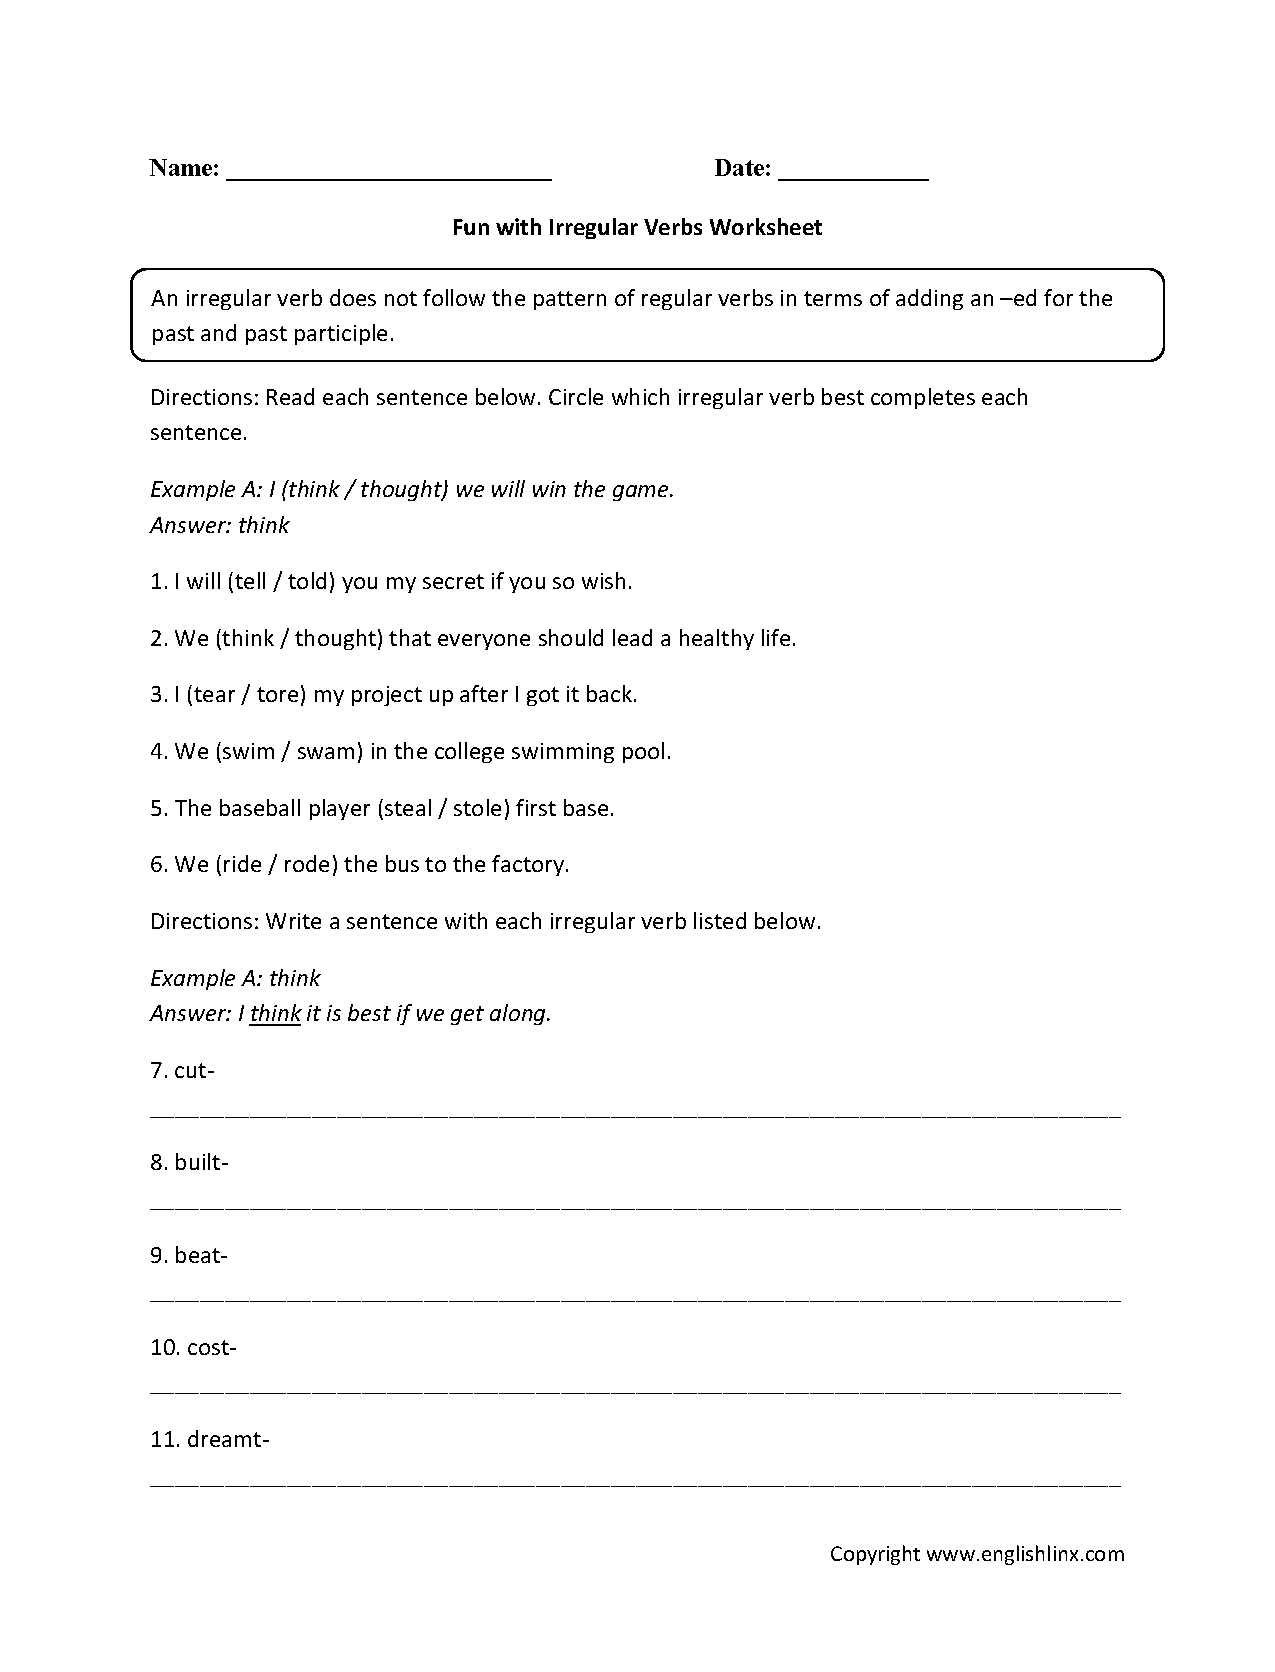 worksheet Irregular Verbs Worksheet Pdf verbs worksheets irregular worksheets